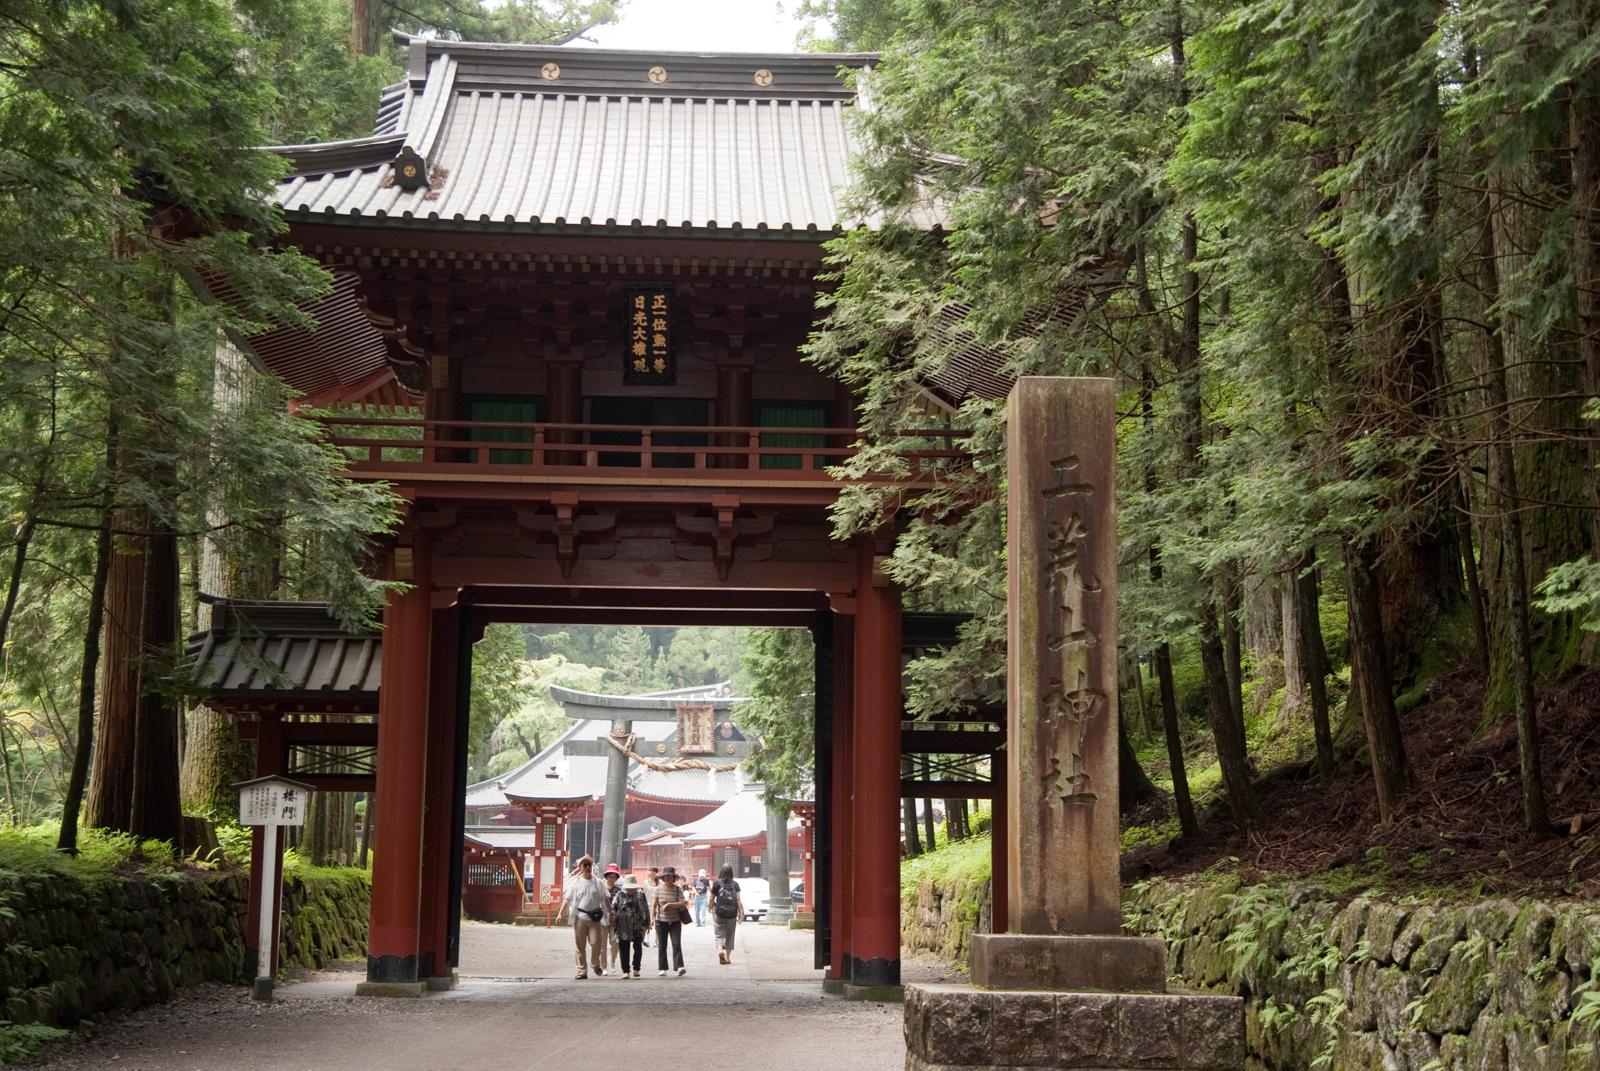 Entrance to the Toshogu shrine